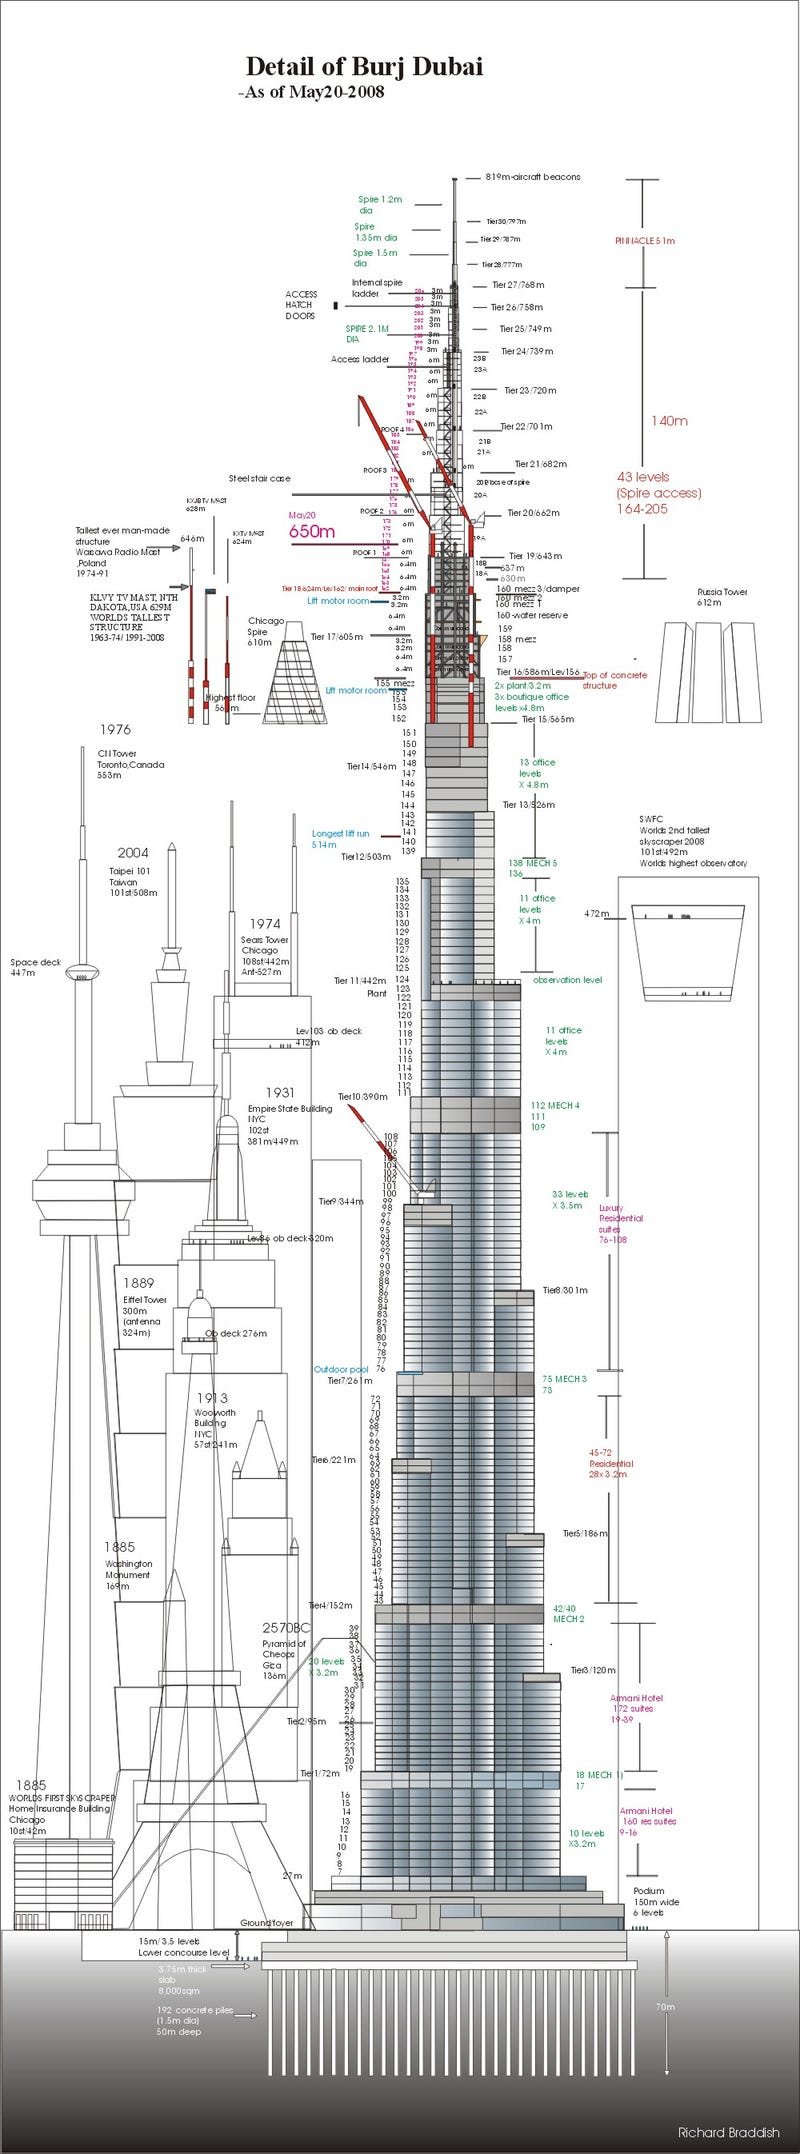 Burj Dubai Becomes World's Tallest Man-Made Structure Today